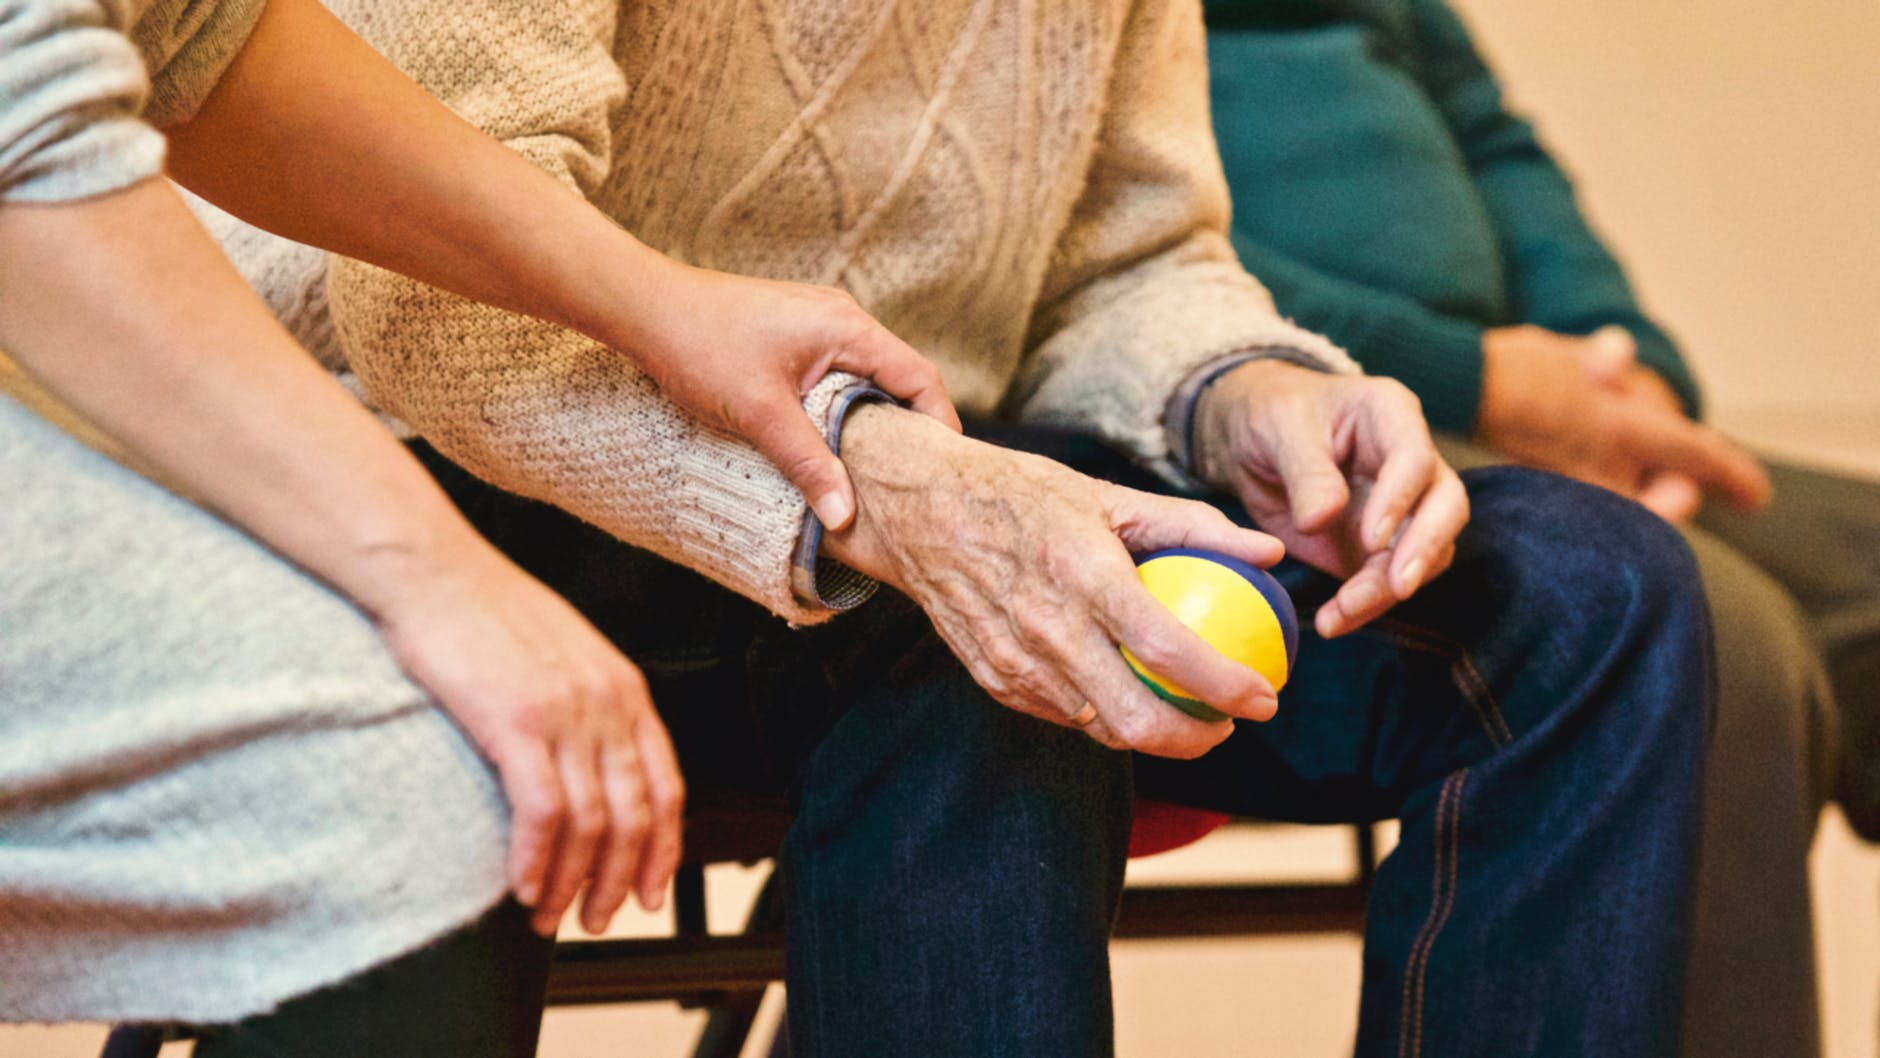 7 Tips to Help You Hire the Best In-Home Caregiver from Senior Care Center